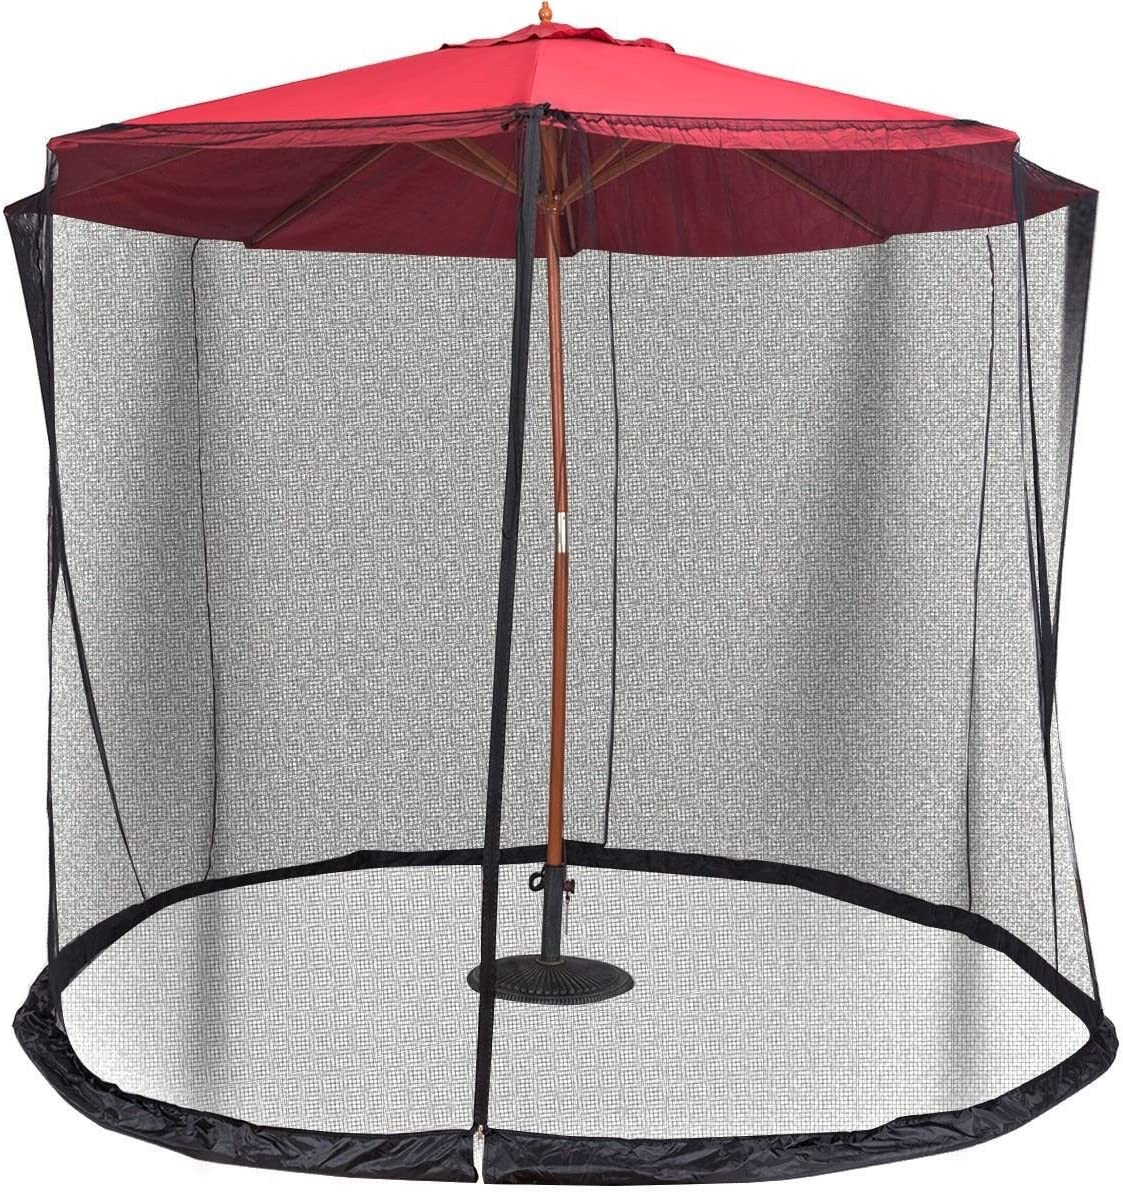 Lana45 Enjoy Outdoor Need 9 10FT M Table Limited Max 89% OFF price sale Umbrella Screen